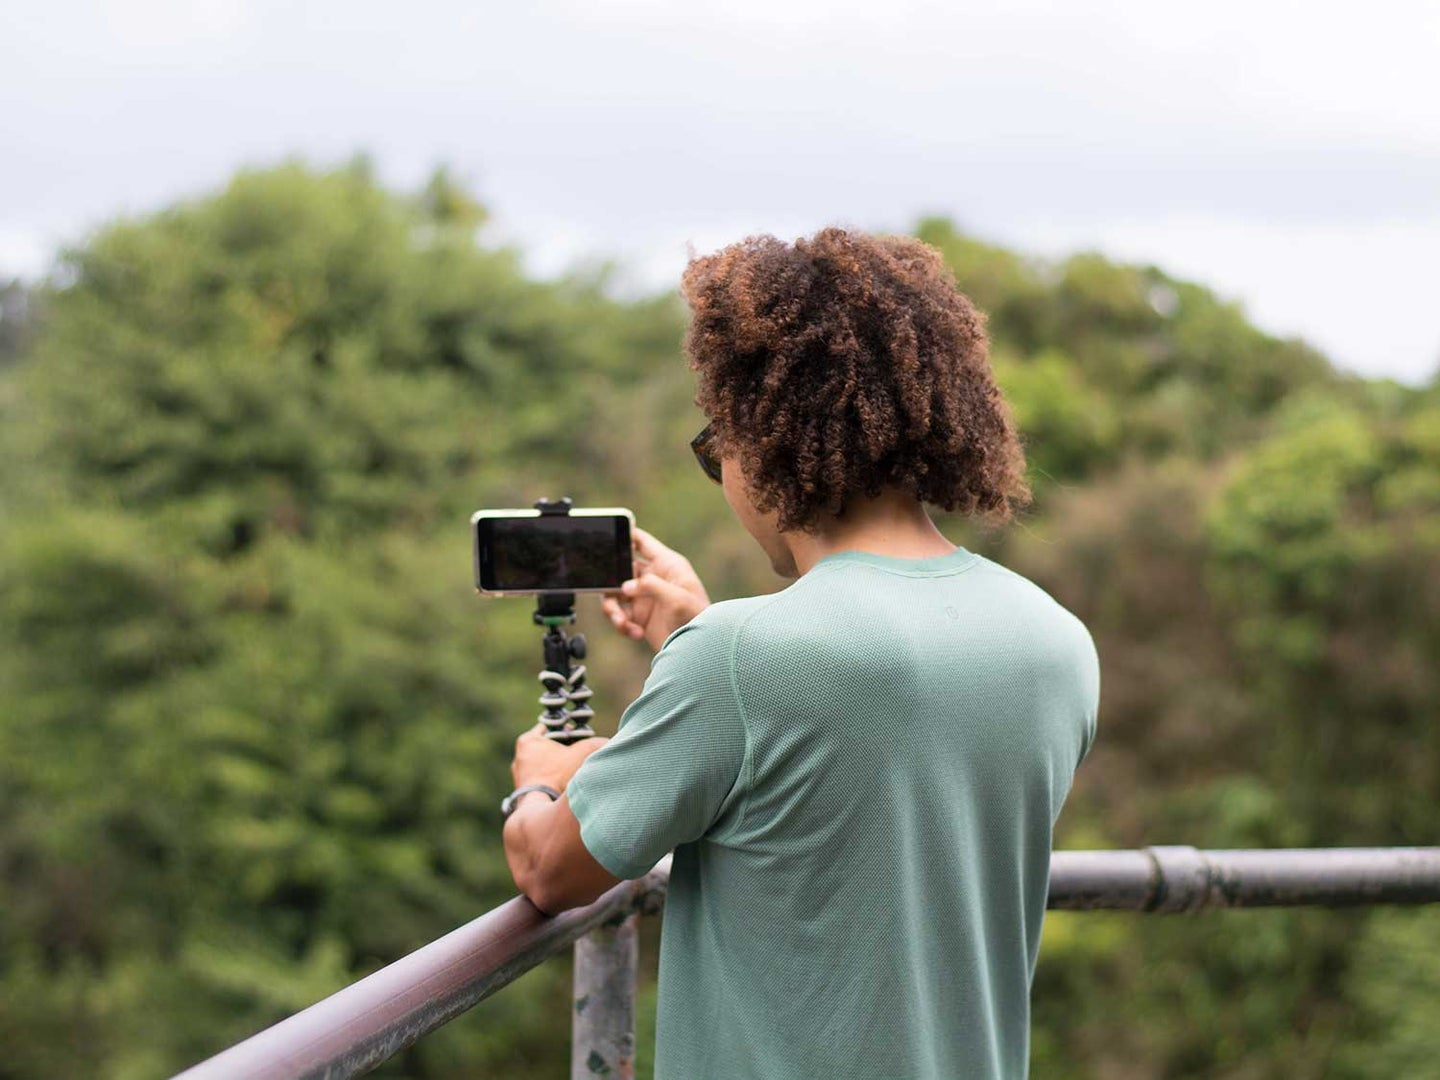 Man using smartphone tripod to take picture in forest.